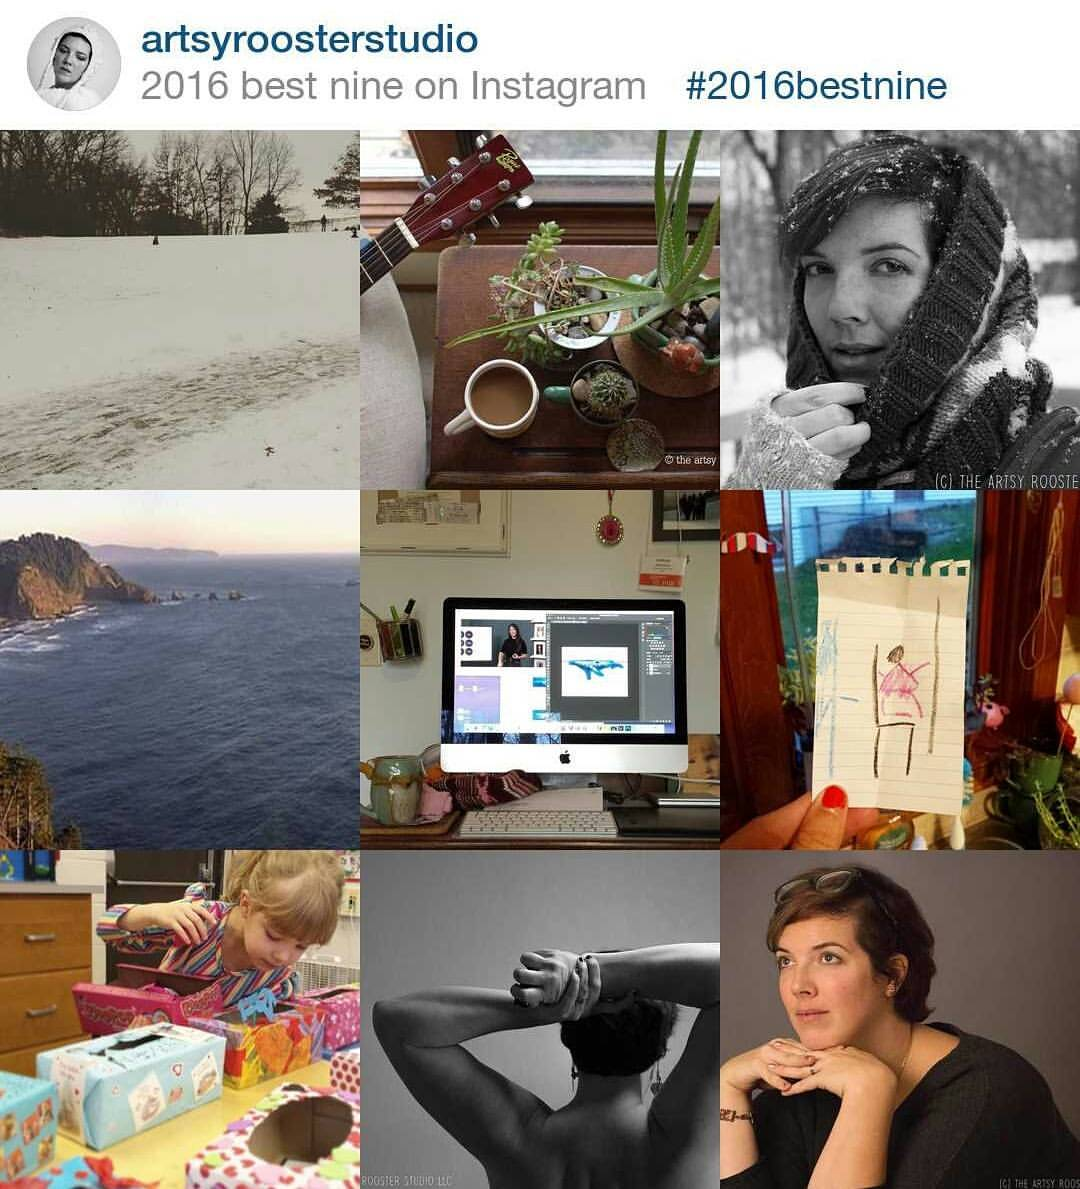 Day 63 Artsy Rooster Studio 2016 best nine